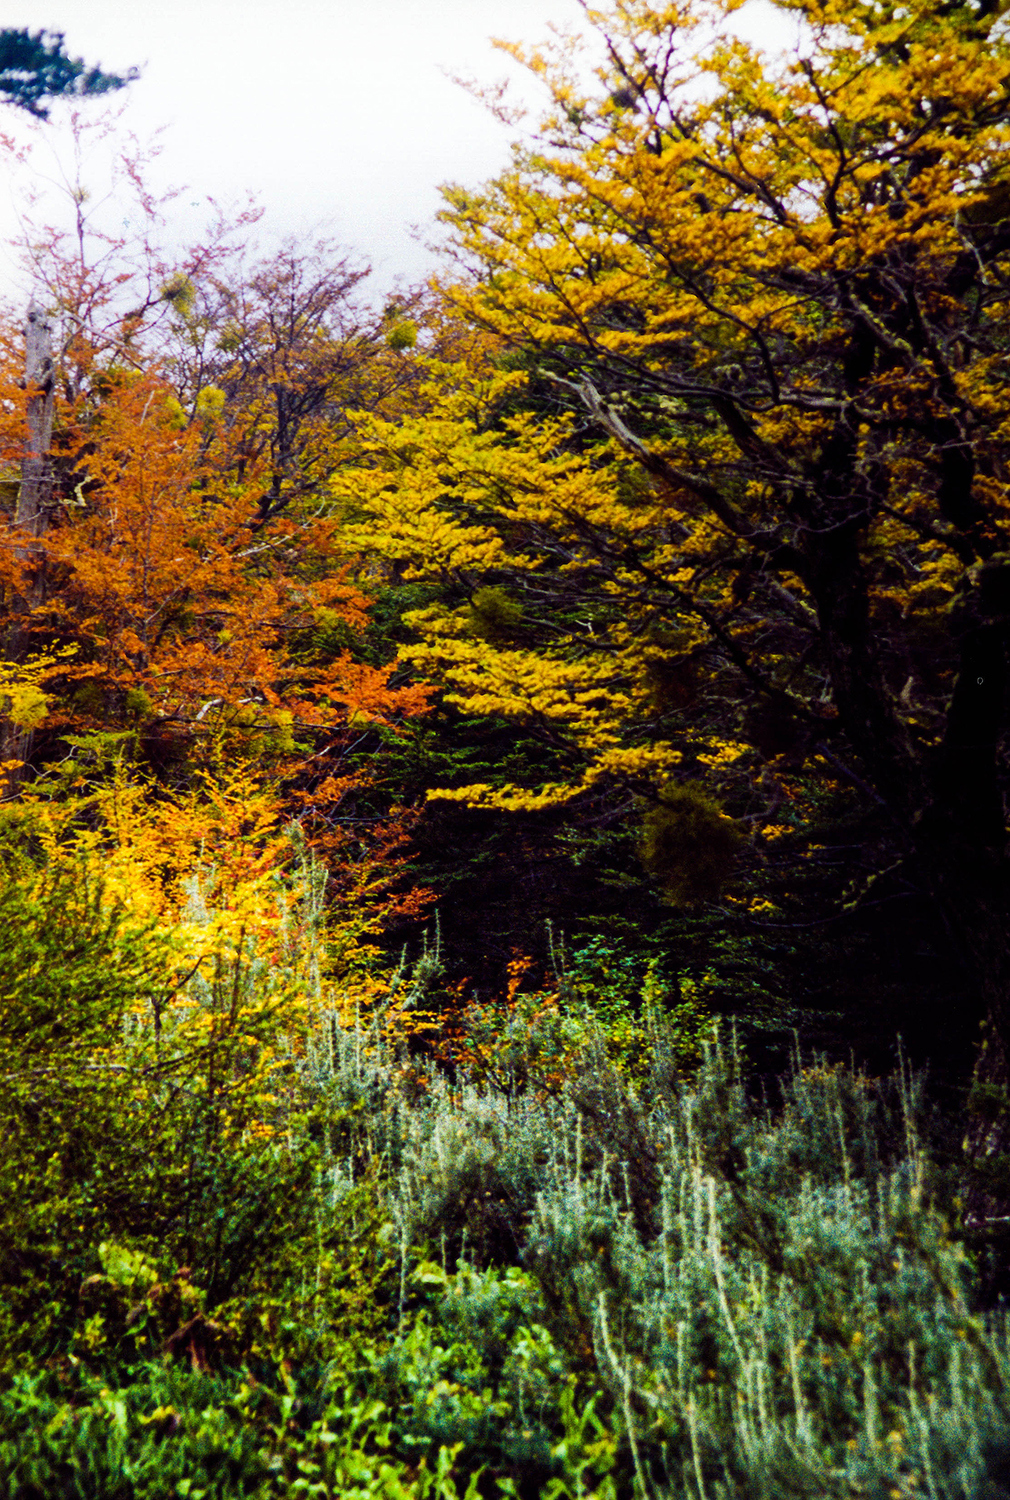 <p>An explosion of colour in the autumn leaves.</p>